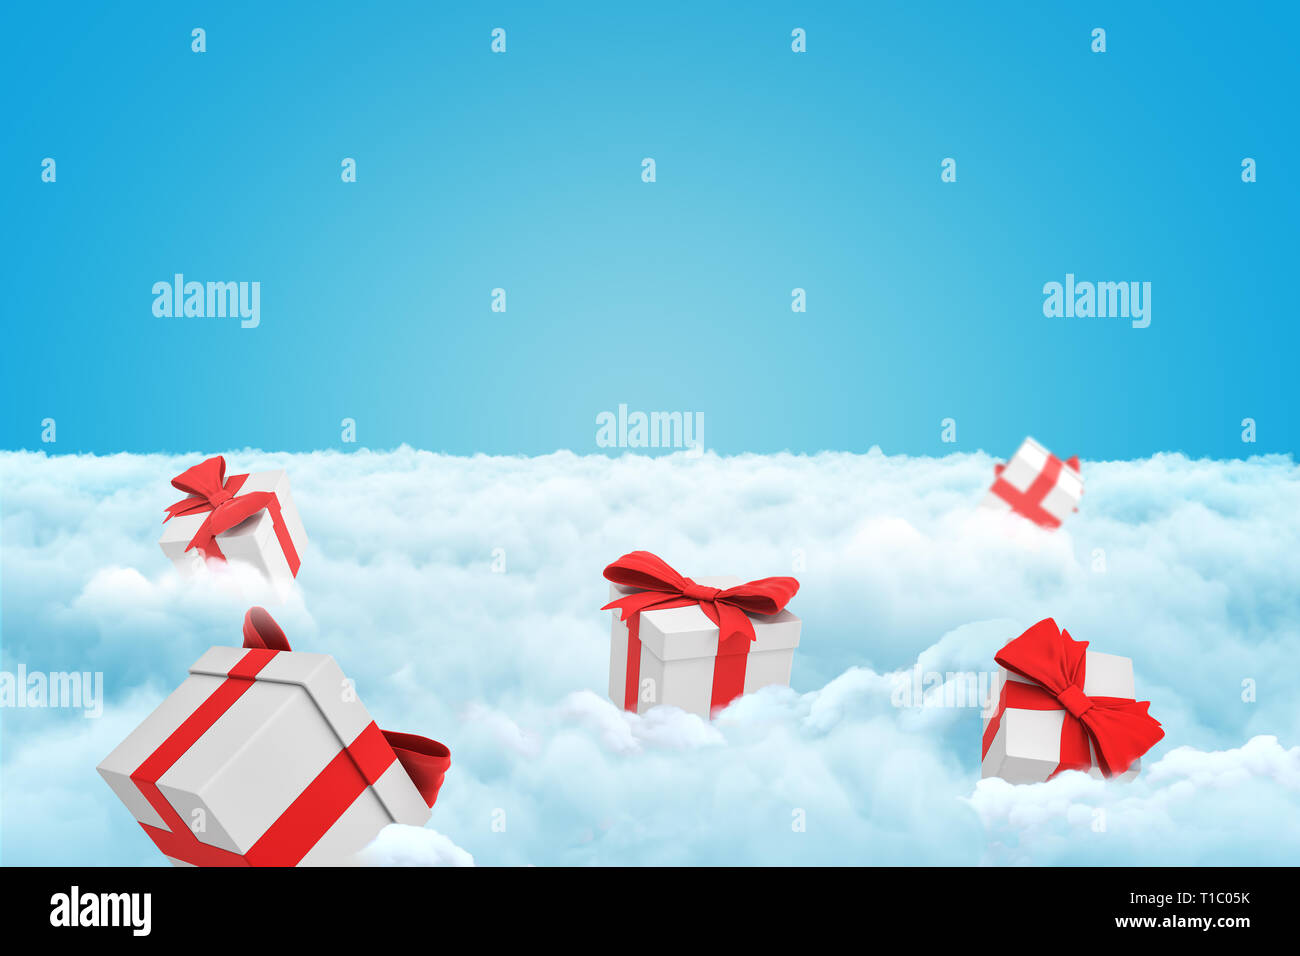 3d rendering of several gift boxes on a layer of white fluffy clouds with some copy space left in the sky. - Stock Image